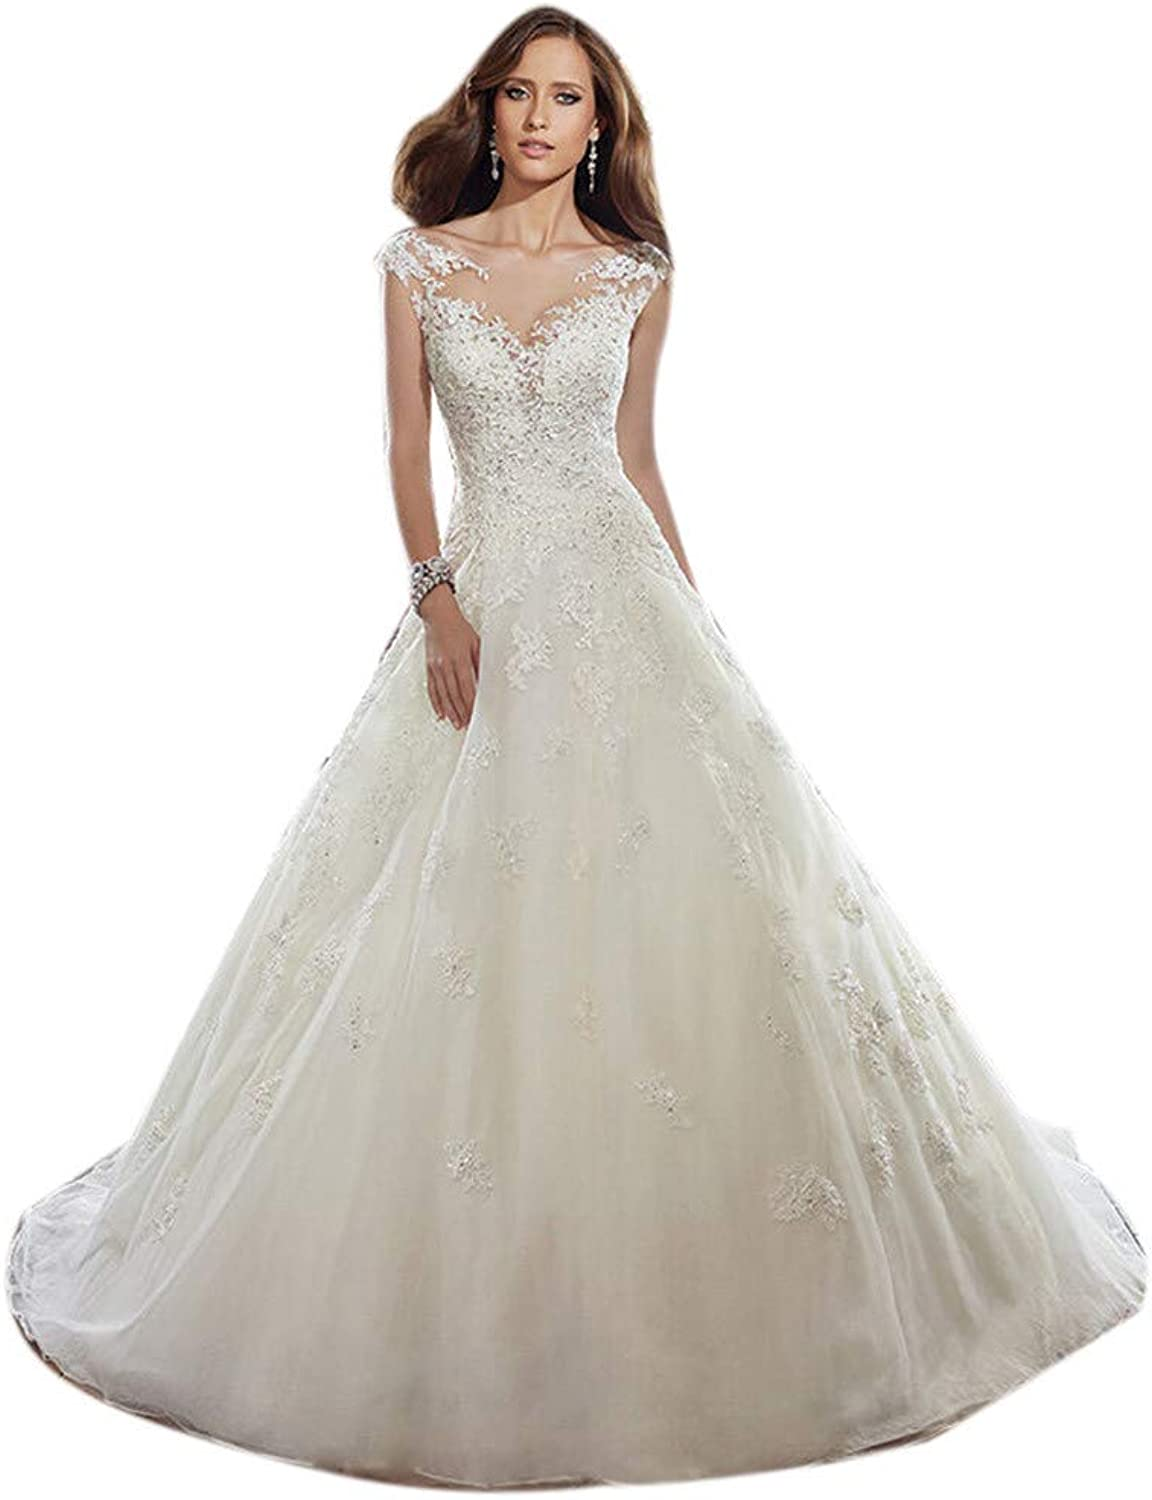 Women's V Neck Sleeveless Bridal Gowns Backless Lace Hollow Chapel Train A Line Wedding Dresses